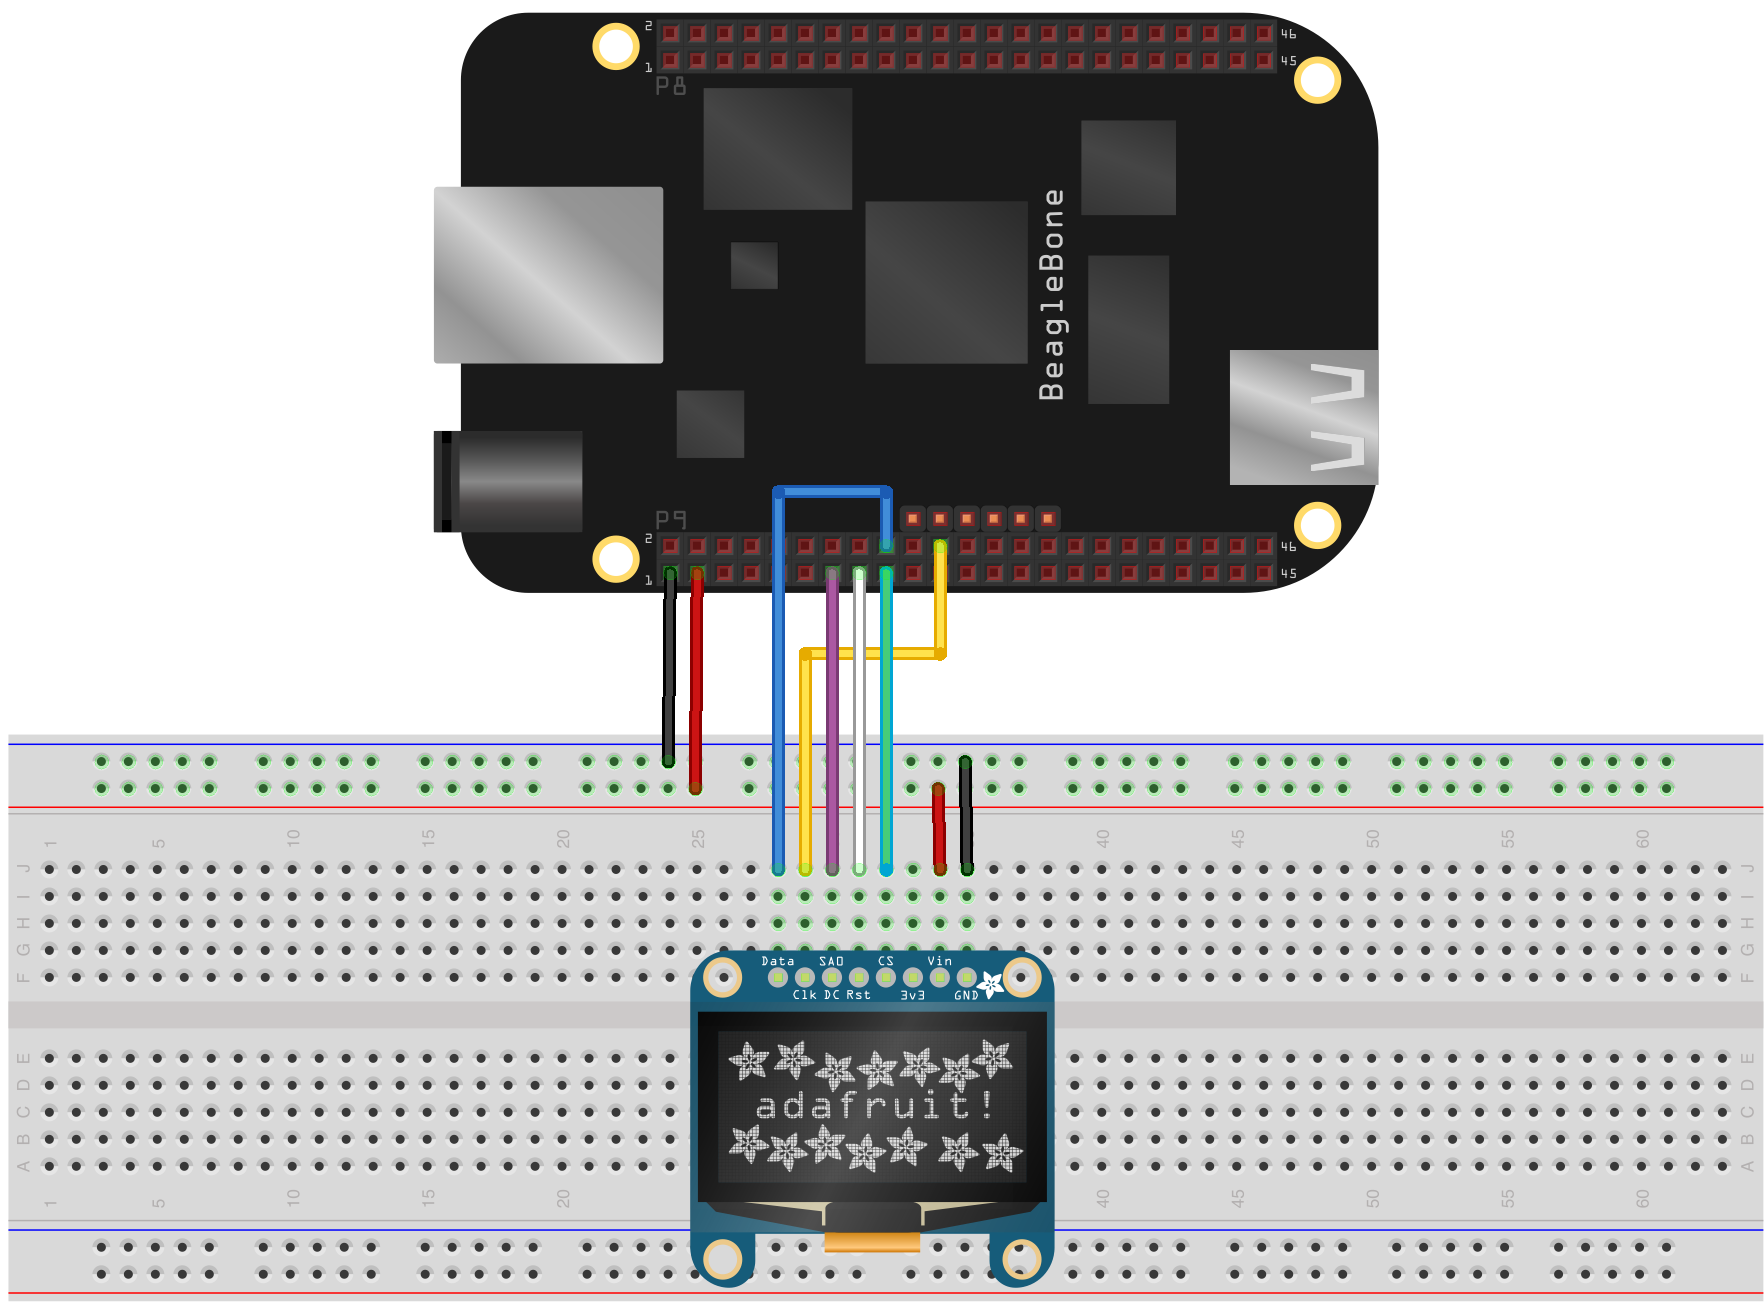 Controlling an Adafruit SSD1306 SPI OLED With a Beaglebone Black on gps schematic, lcd schematic, solar schematic, quadcopter schematic, geiger counter schematic, msp430 schematic, usb schematic, arduino schematic, electronics schematic, breadboard schematic, wireless schematic, bluetooth schematic, flux capacitor schematic, apple schematic, xbee schematic,